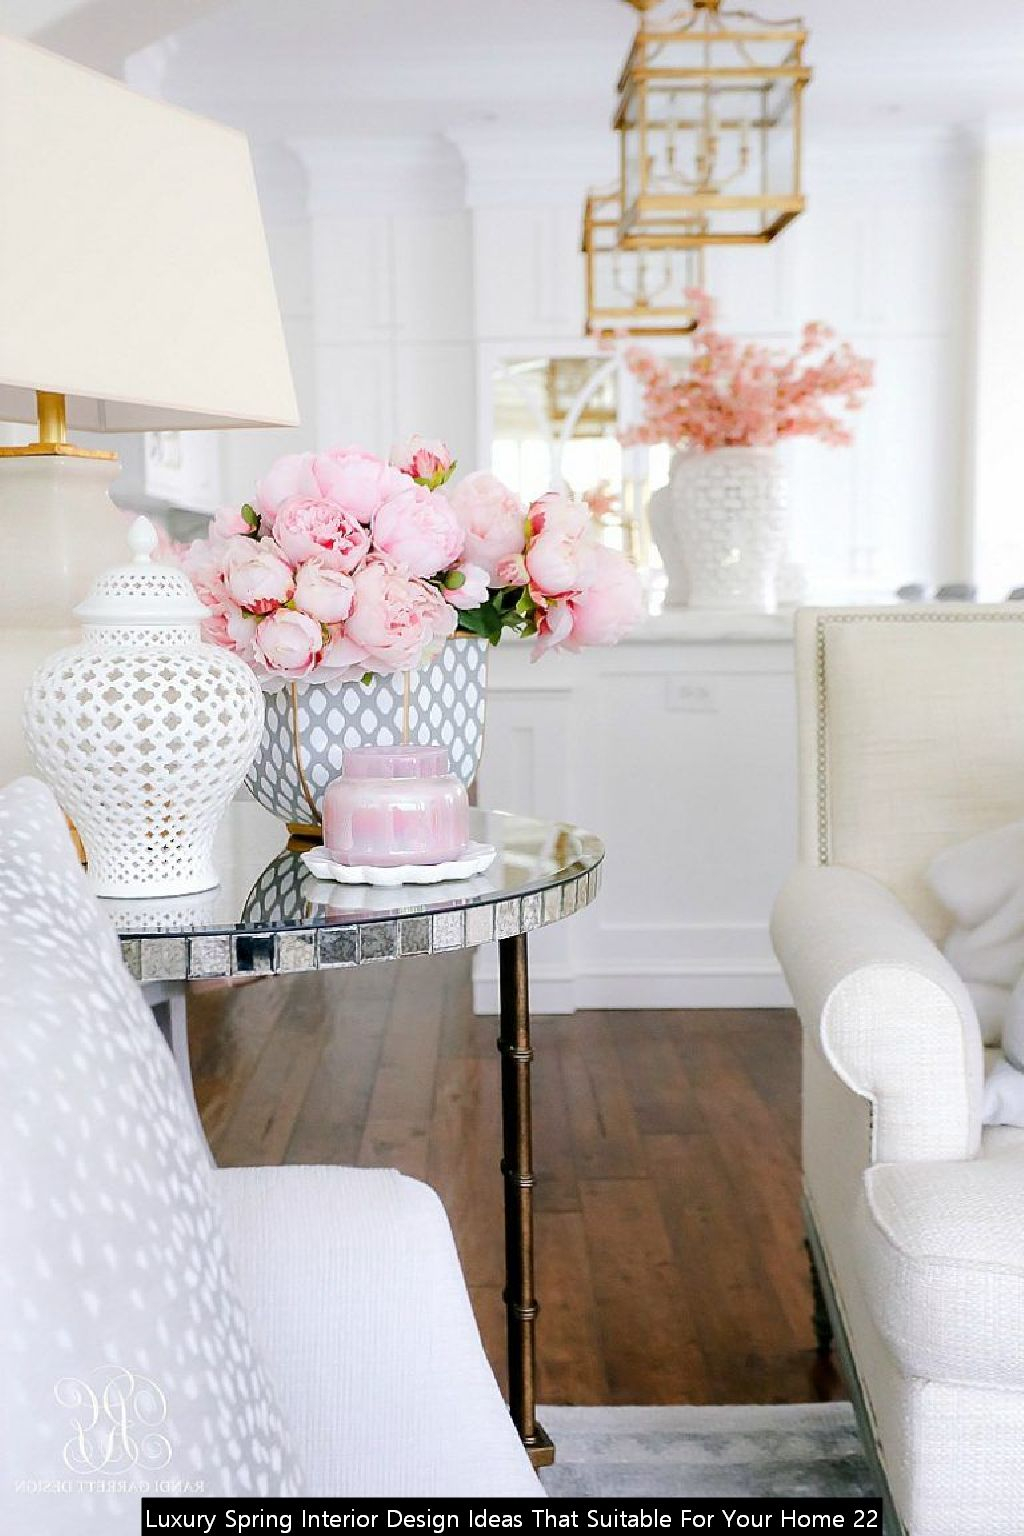 Luxury Spring Interior Design Ideas That Suitable For Your Home 22